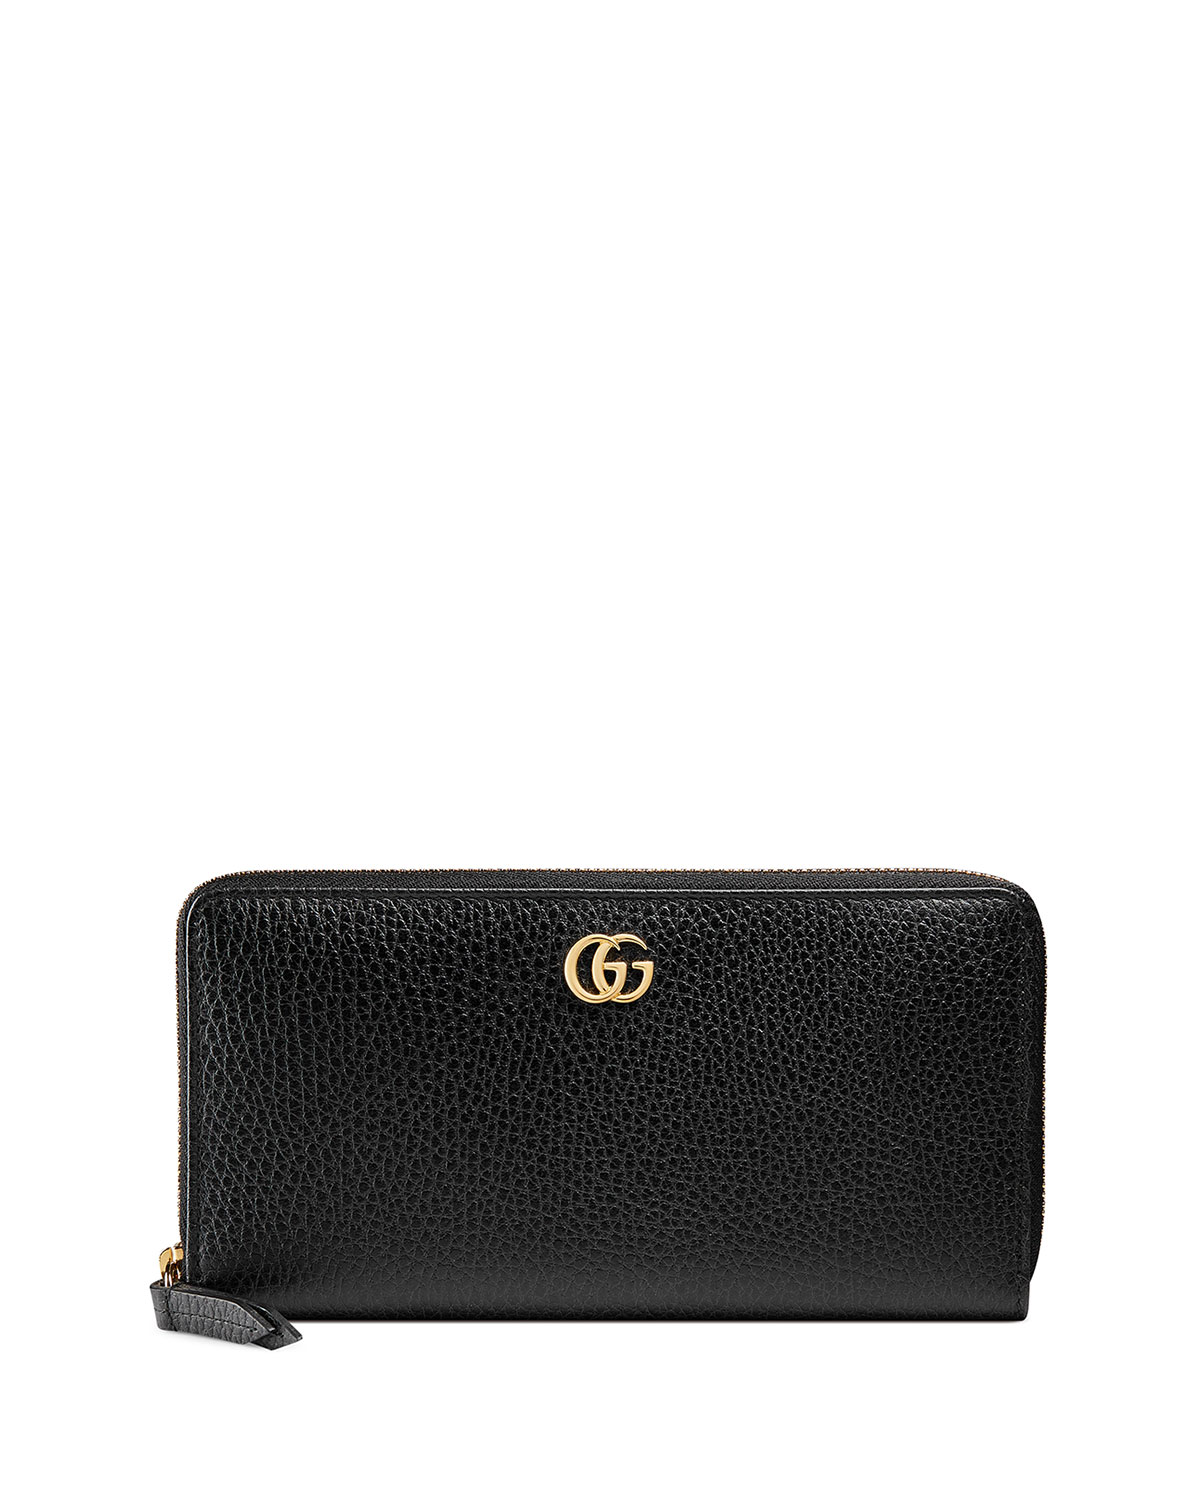 646441e9f28c Petite Marmont Leather Zip Around Wallet Gucci   Stanford Center for ...